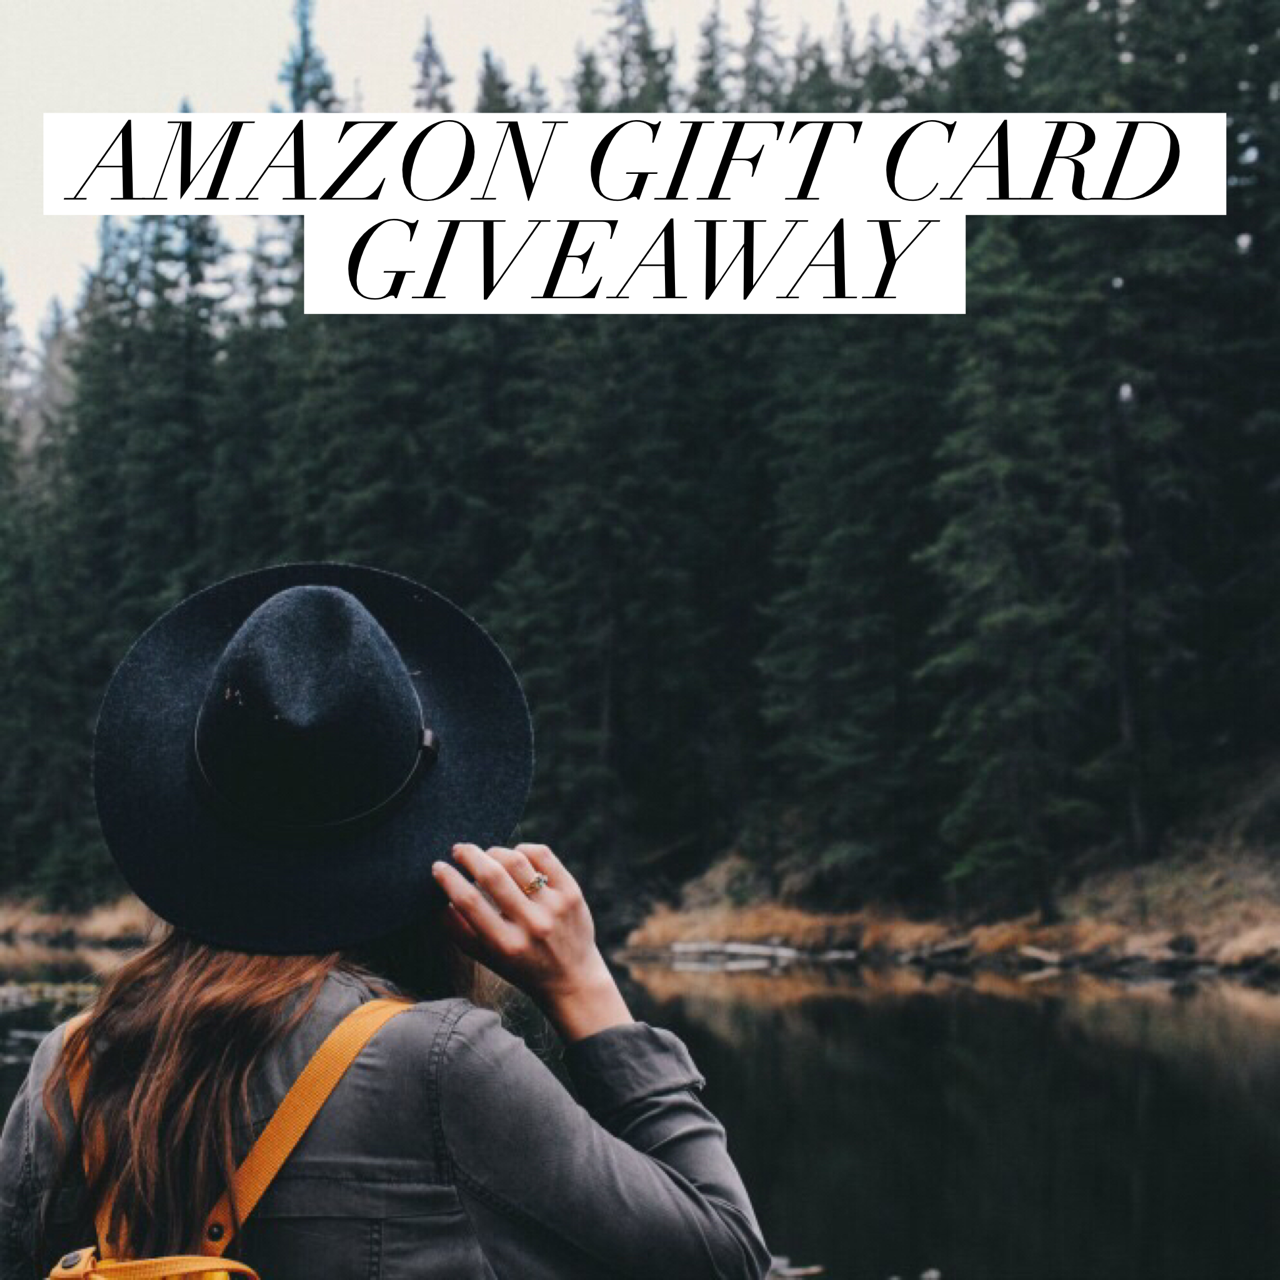 Time For A $200 Amazon Gift Card Giveaway! -  Ann Again and again Reviews